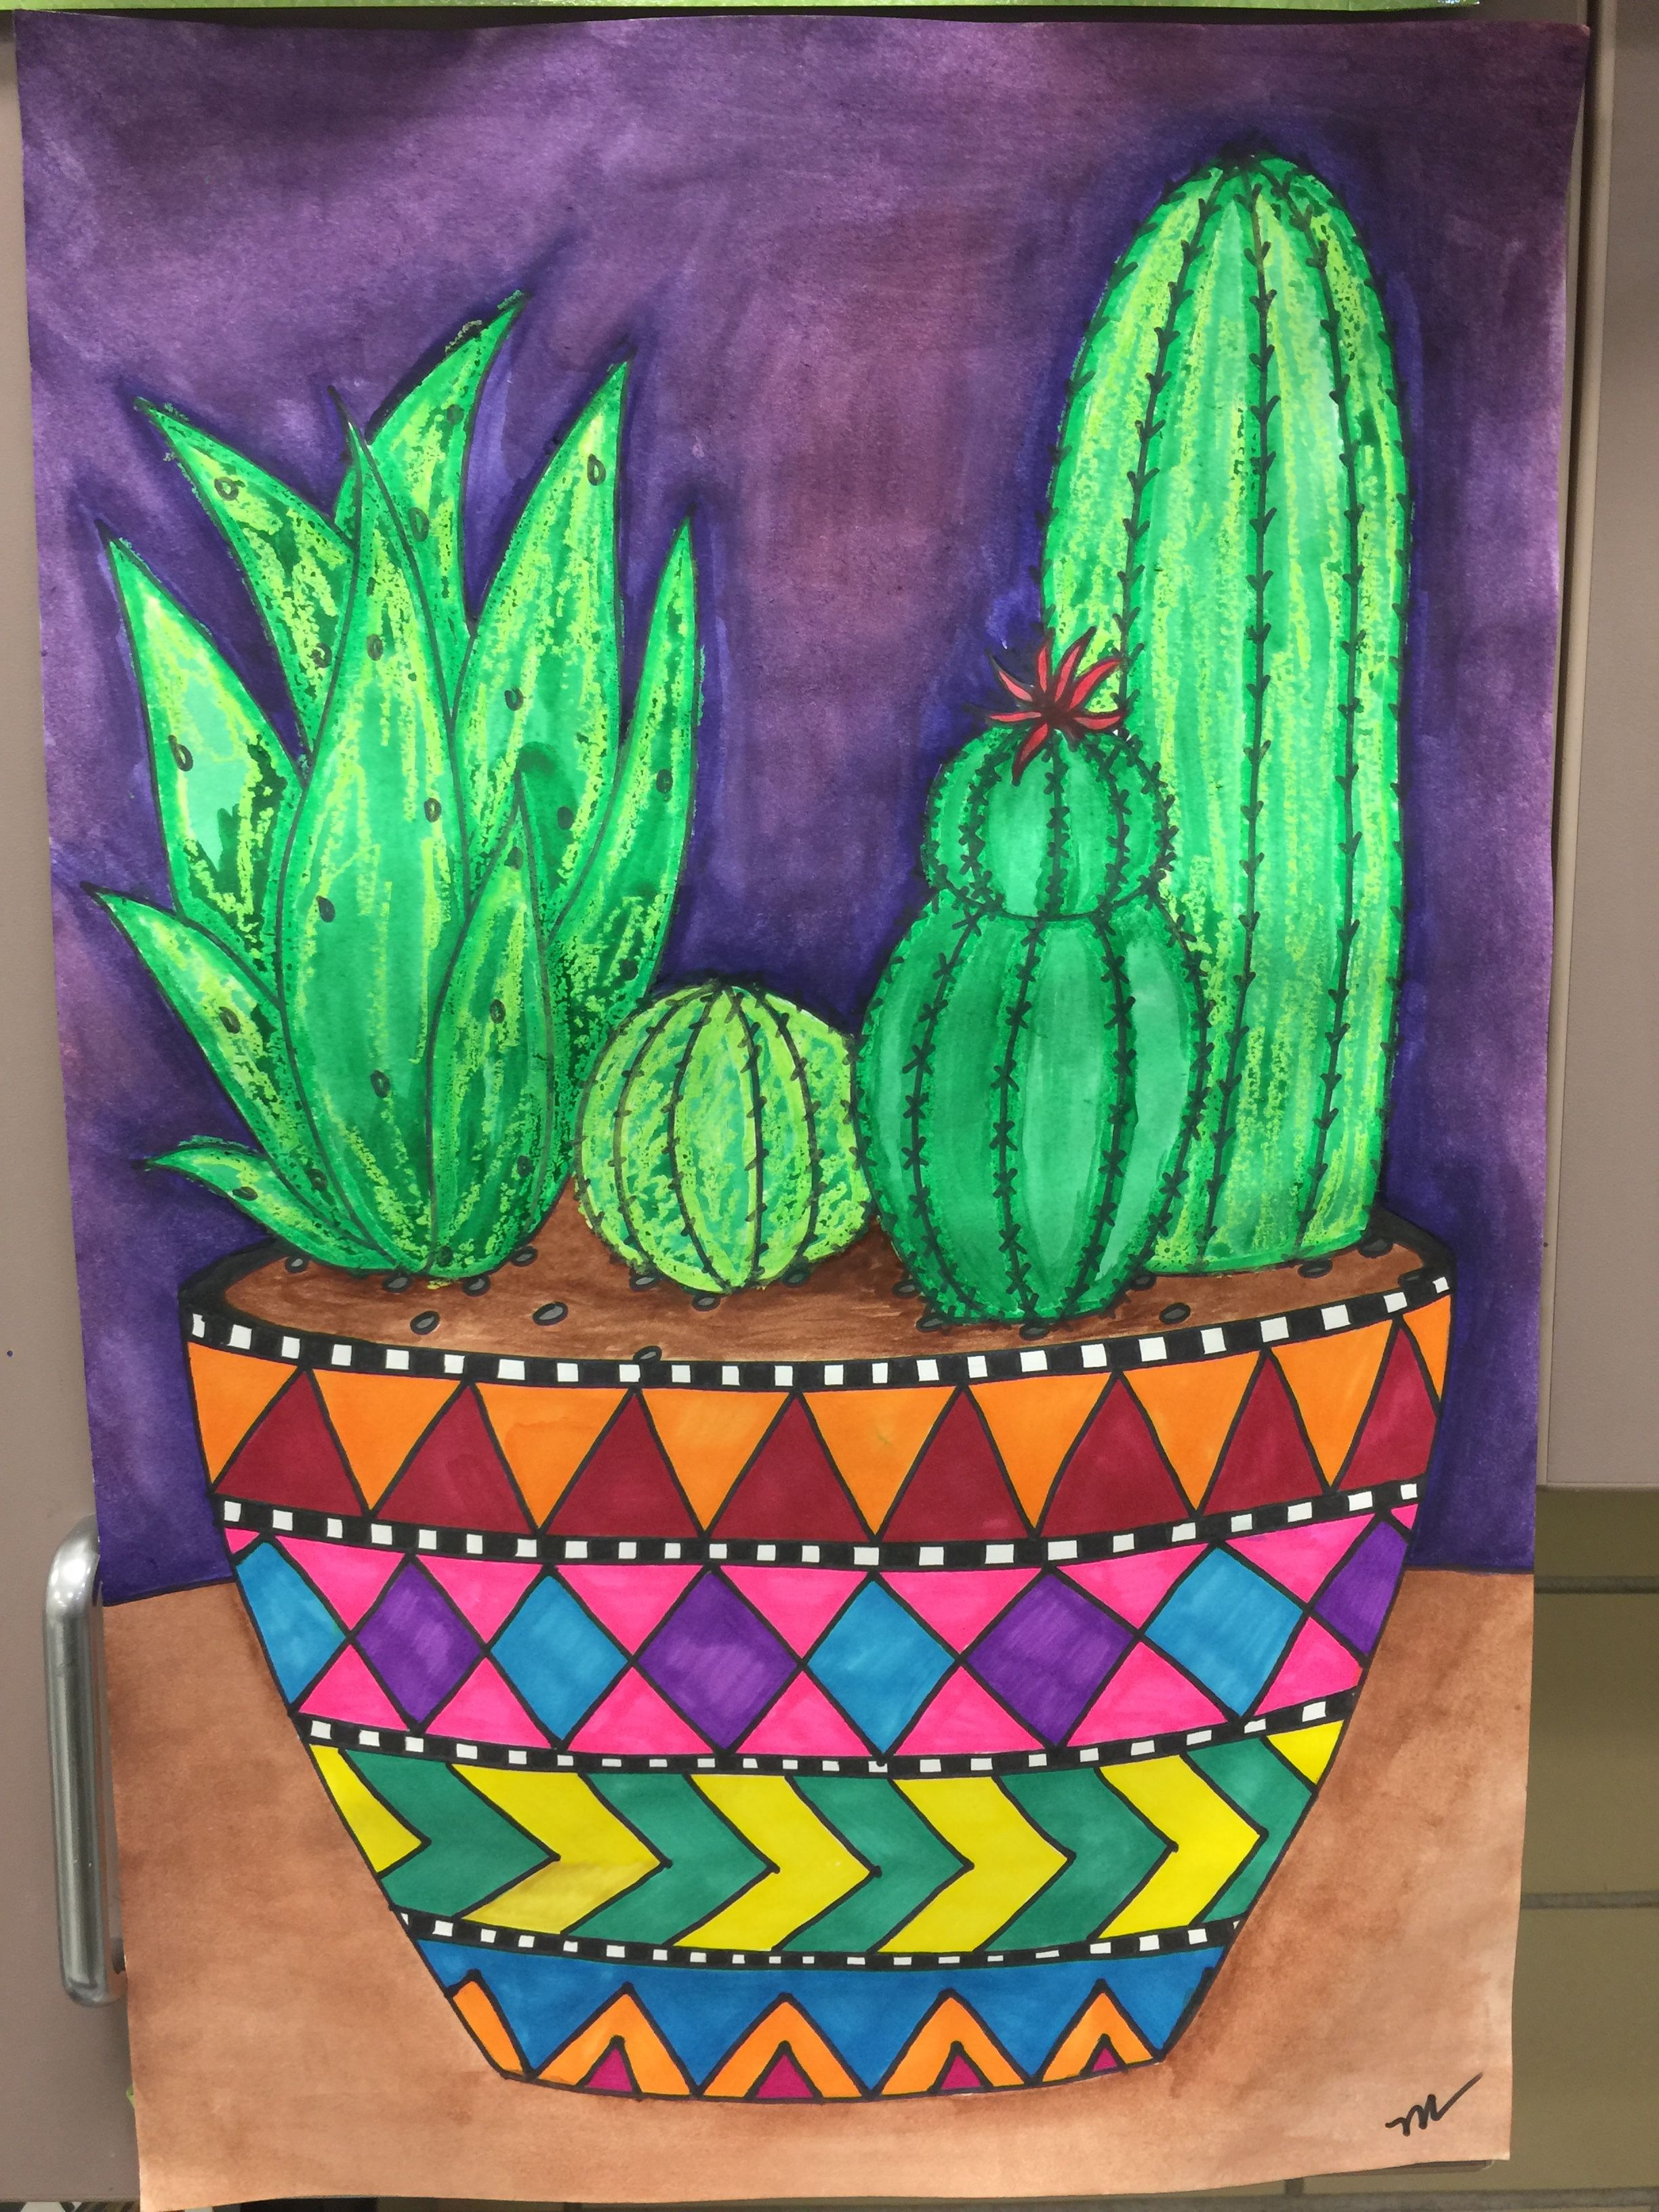 Potted Cactus Art Project For Grades 3 5 Created By